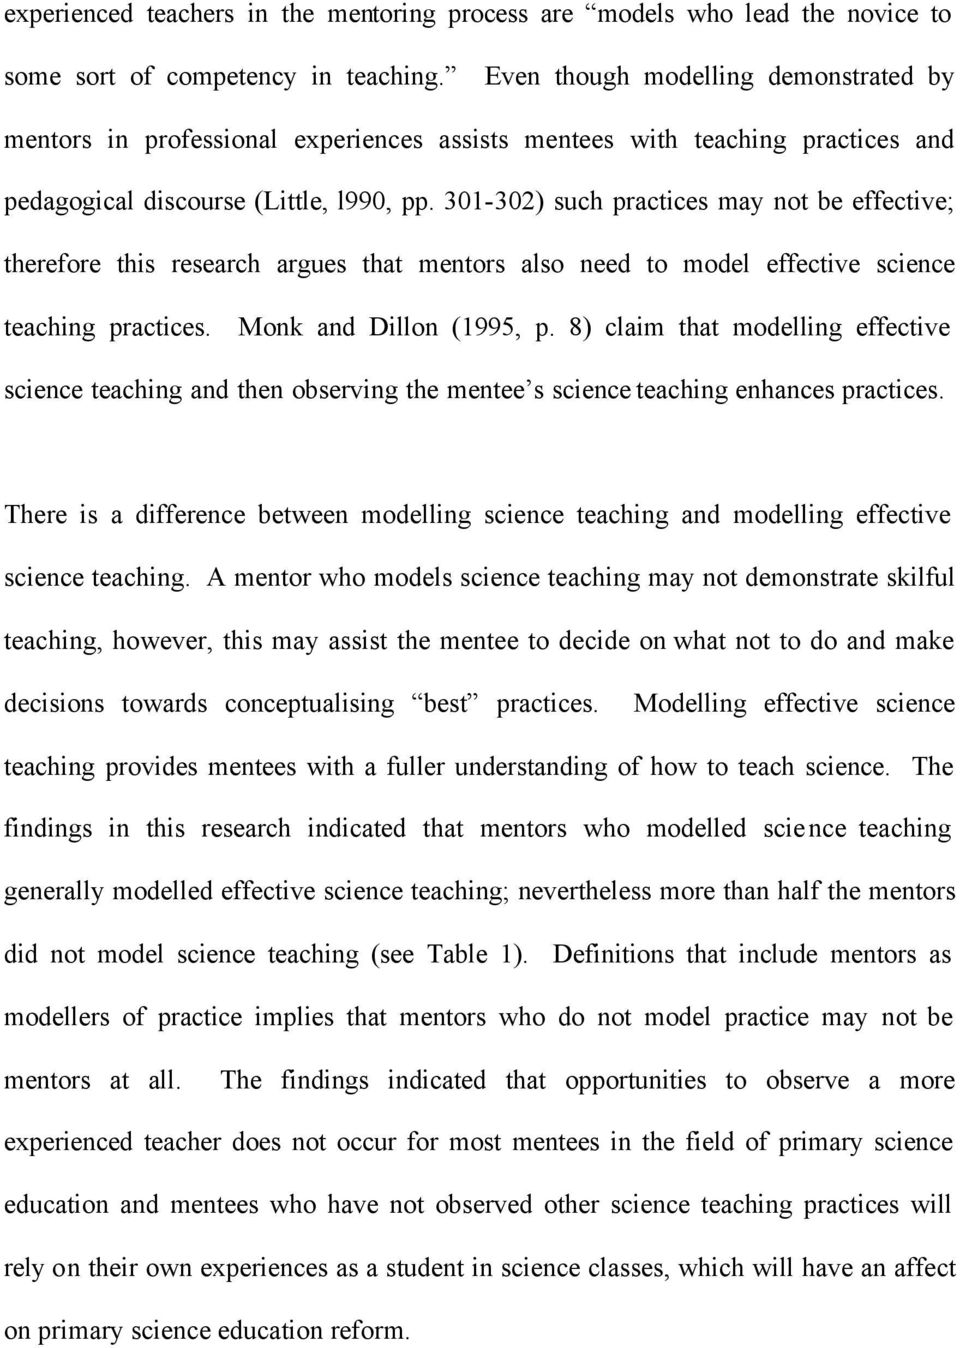 301-302) such practices may not be effective; therefore this research argues that mentors also need to model effective science teaching practices. Monk and Dillon (1995, p.